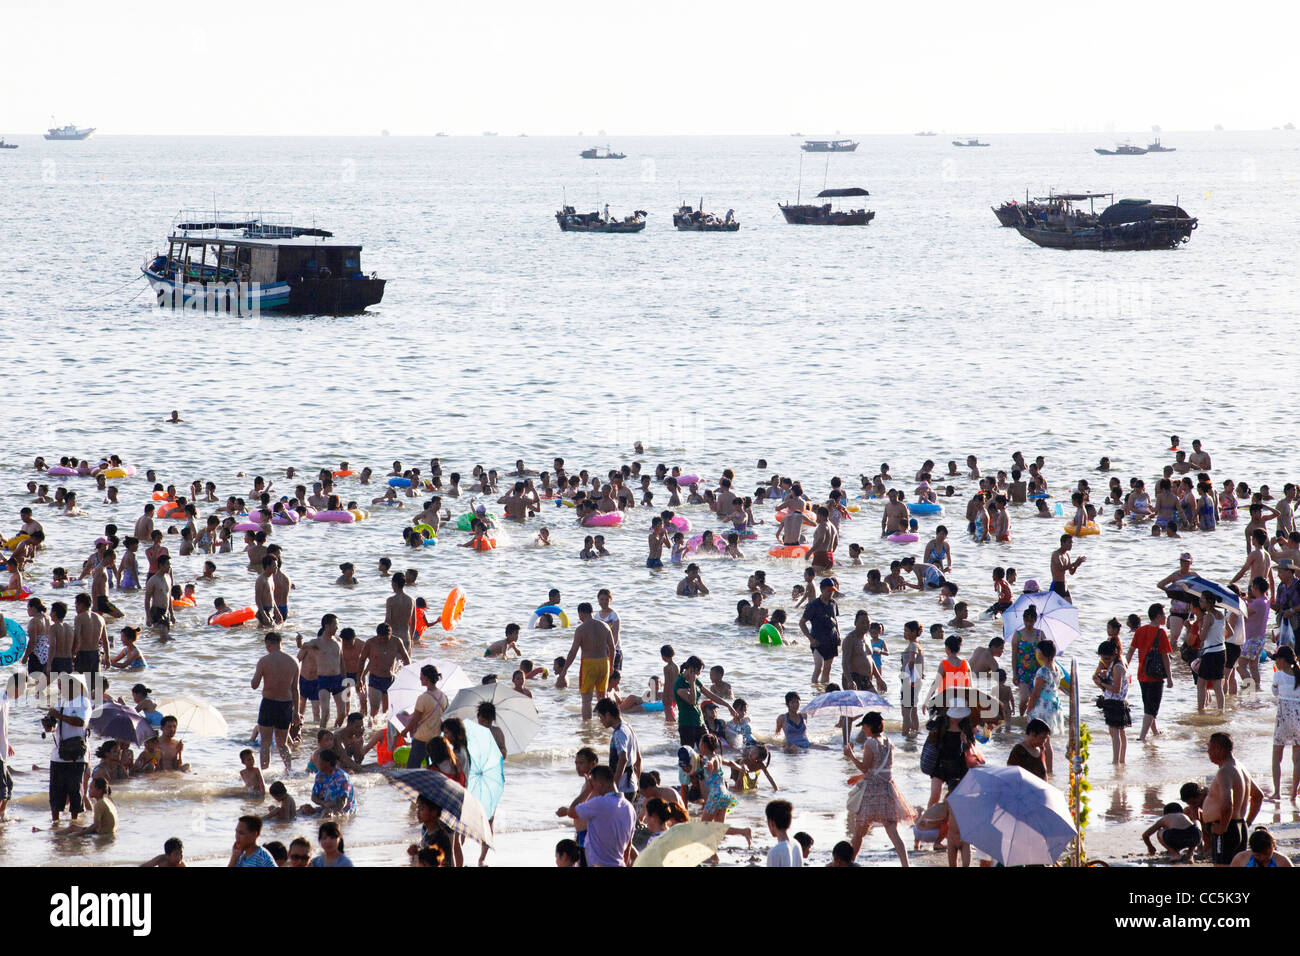 People swimming in the South China Sea, Silver Beach, Beihai, Guangxi , China - Stock Image